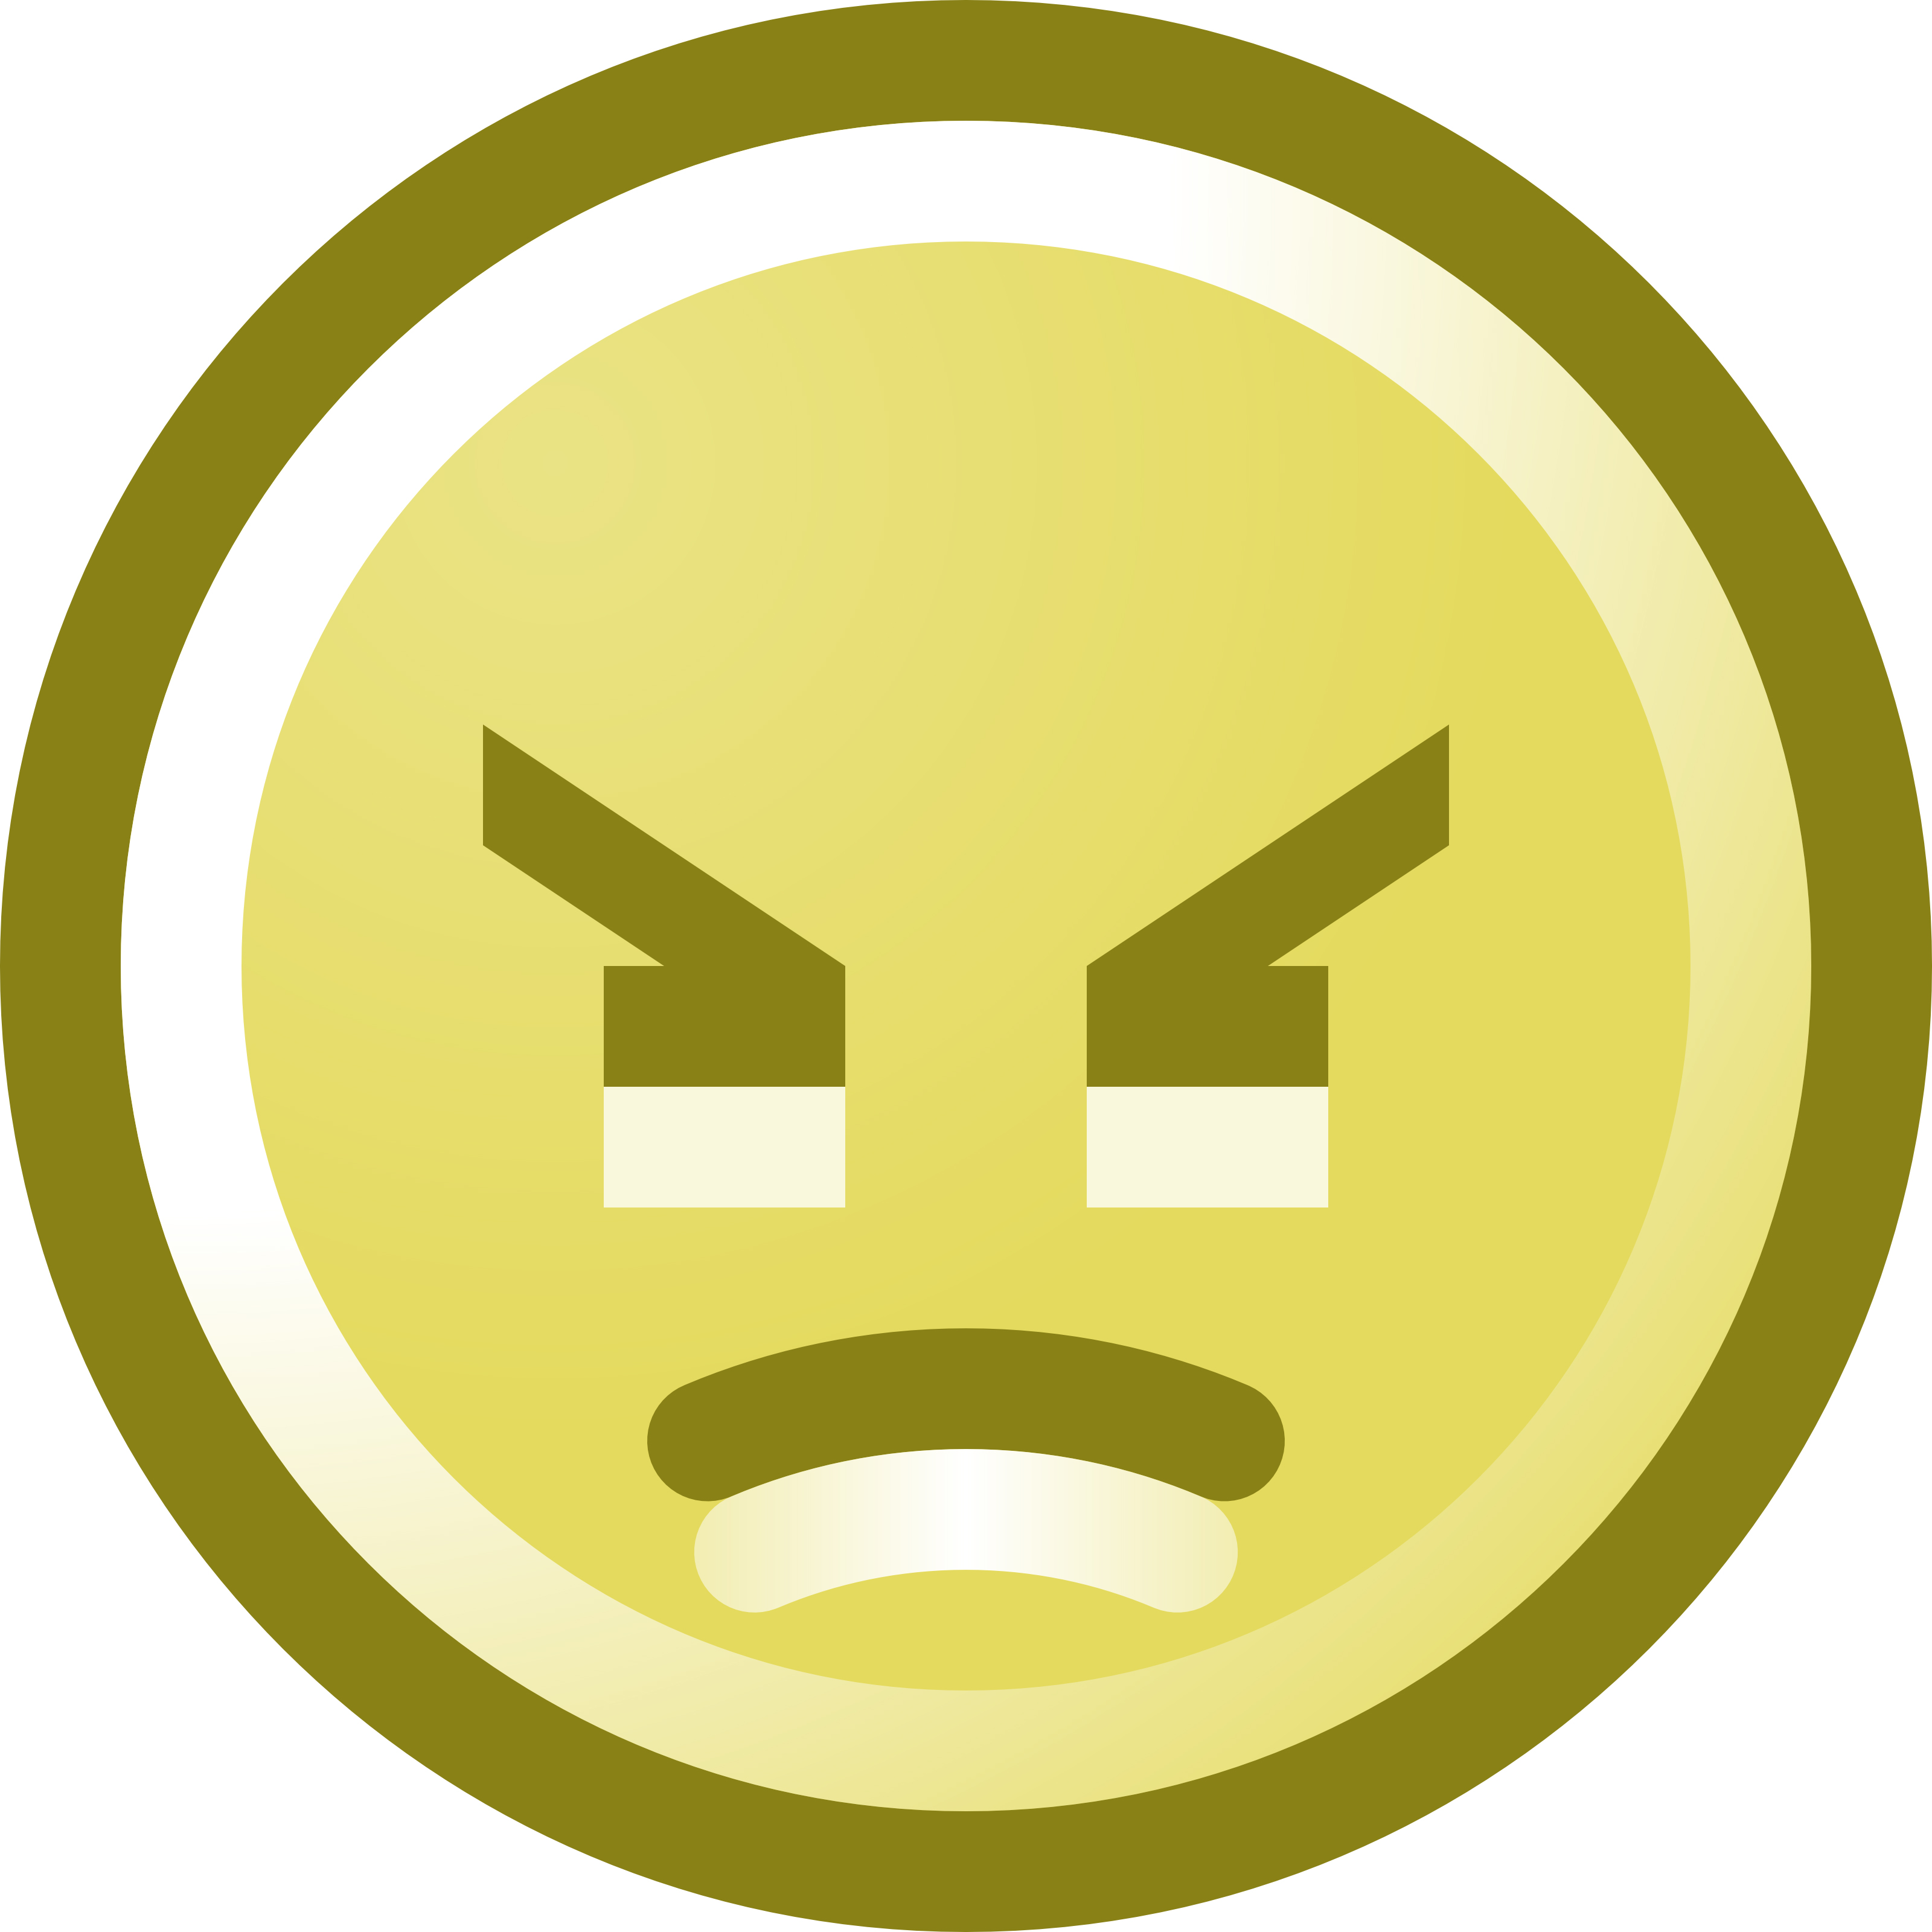 3200x3200 Angry Smiley Face Clip Art Illustration